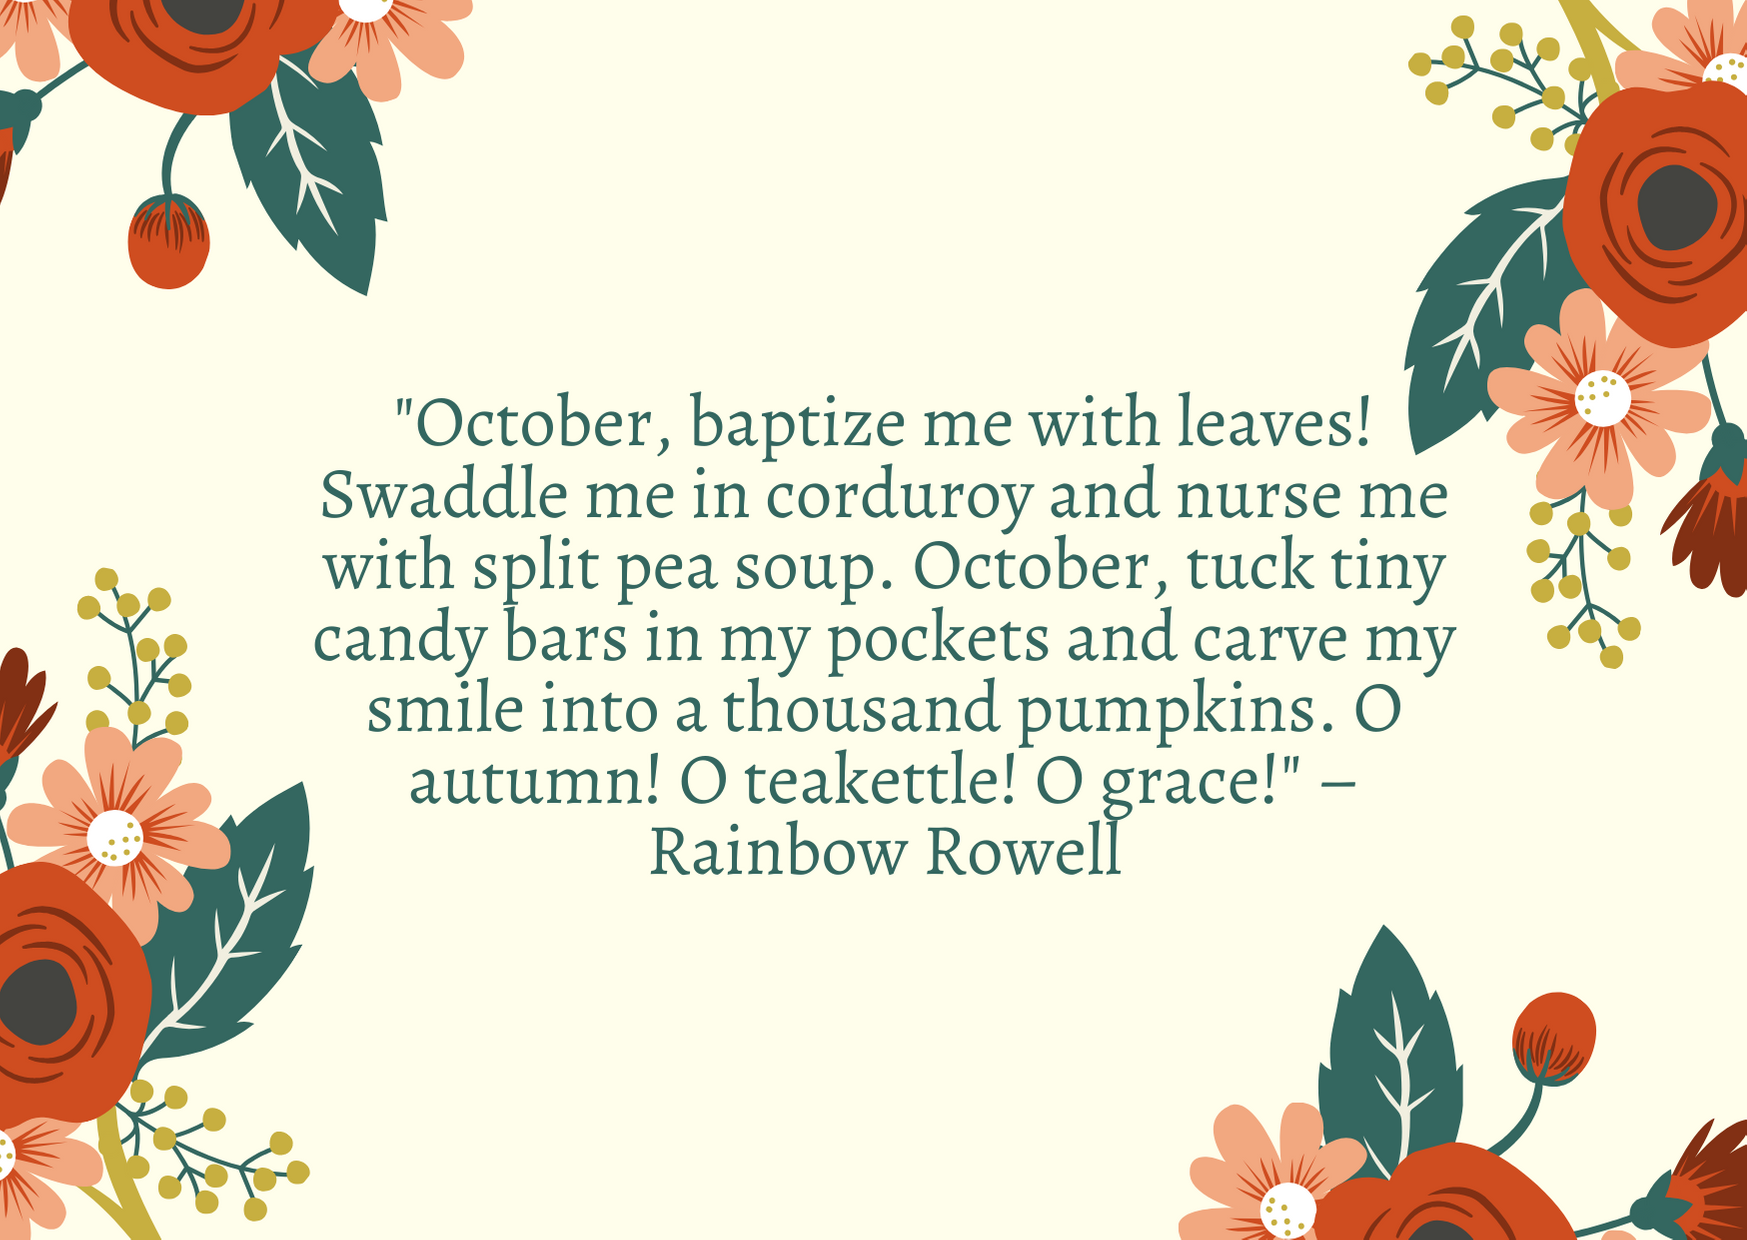 """October, baptize me with leaves! Swaddle me in corduroy and nurse me with split pea soup. October, tuck tiny candy bars in my pockets and carve my smile into a thousand pumpkins. O autumn! O teakettle! O grace!"" – Rainbow Rowell"